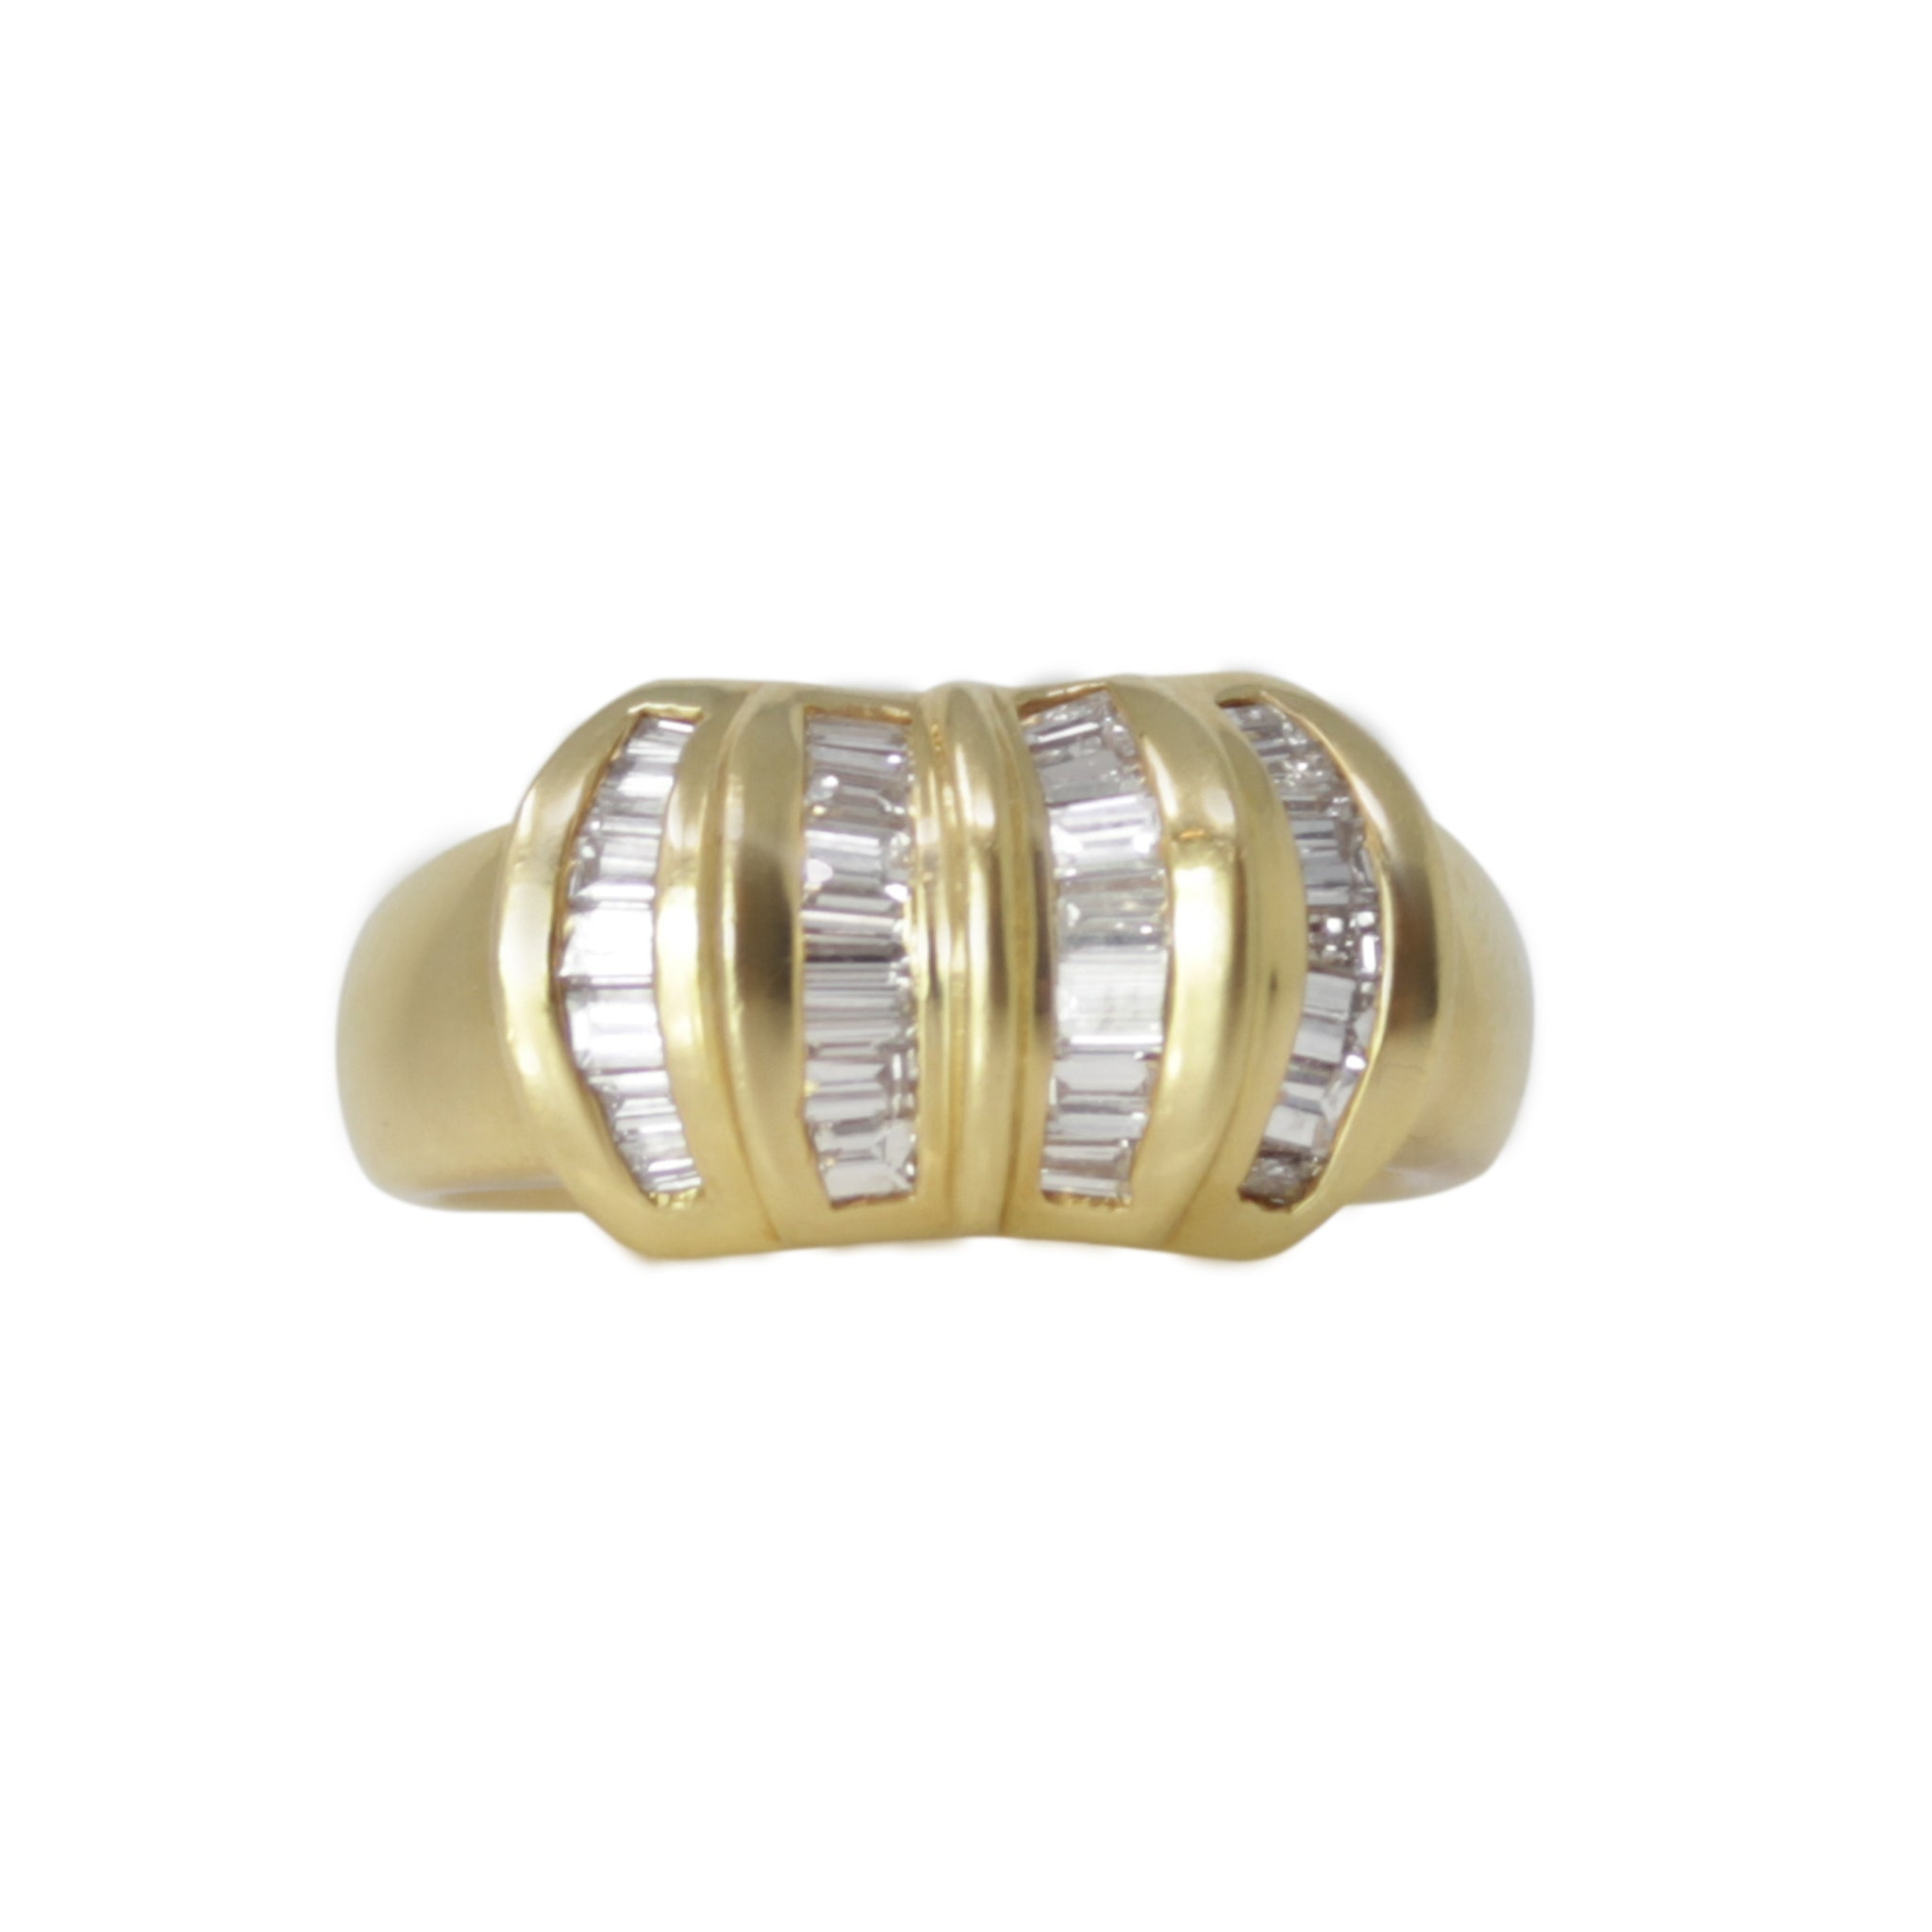 Ignite Diamond Ring - 18K Yellow Gold Diamond Baguette Band Ring